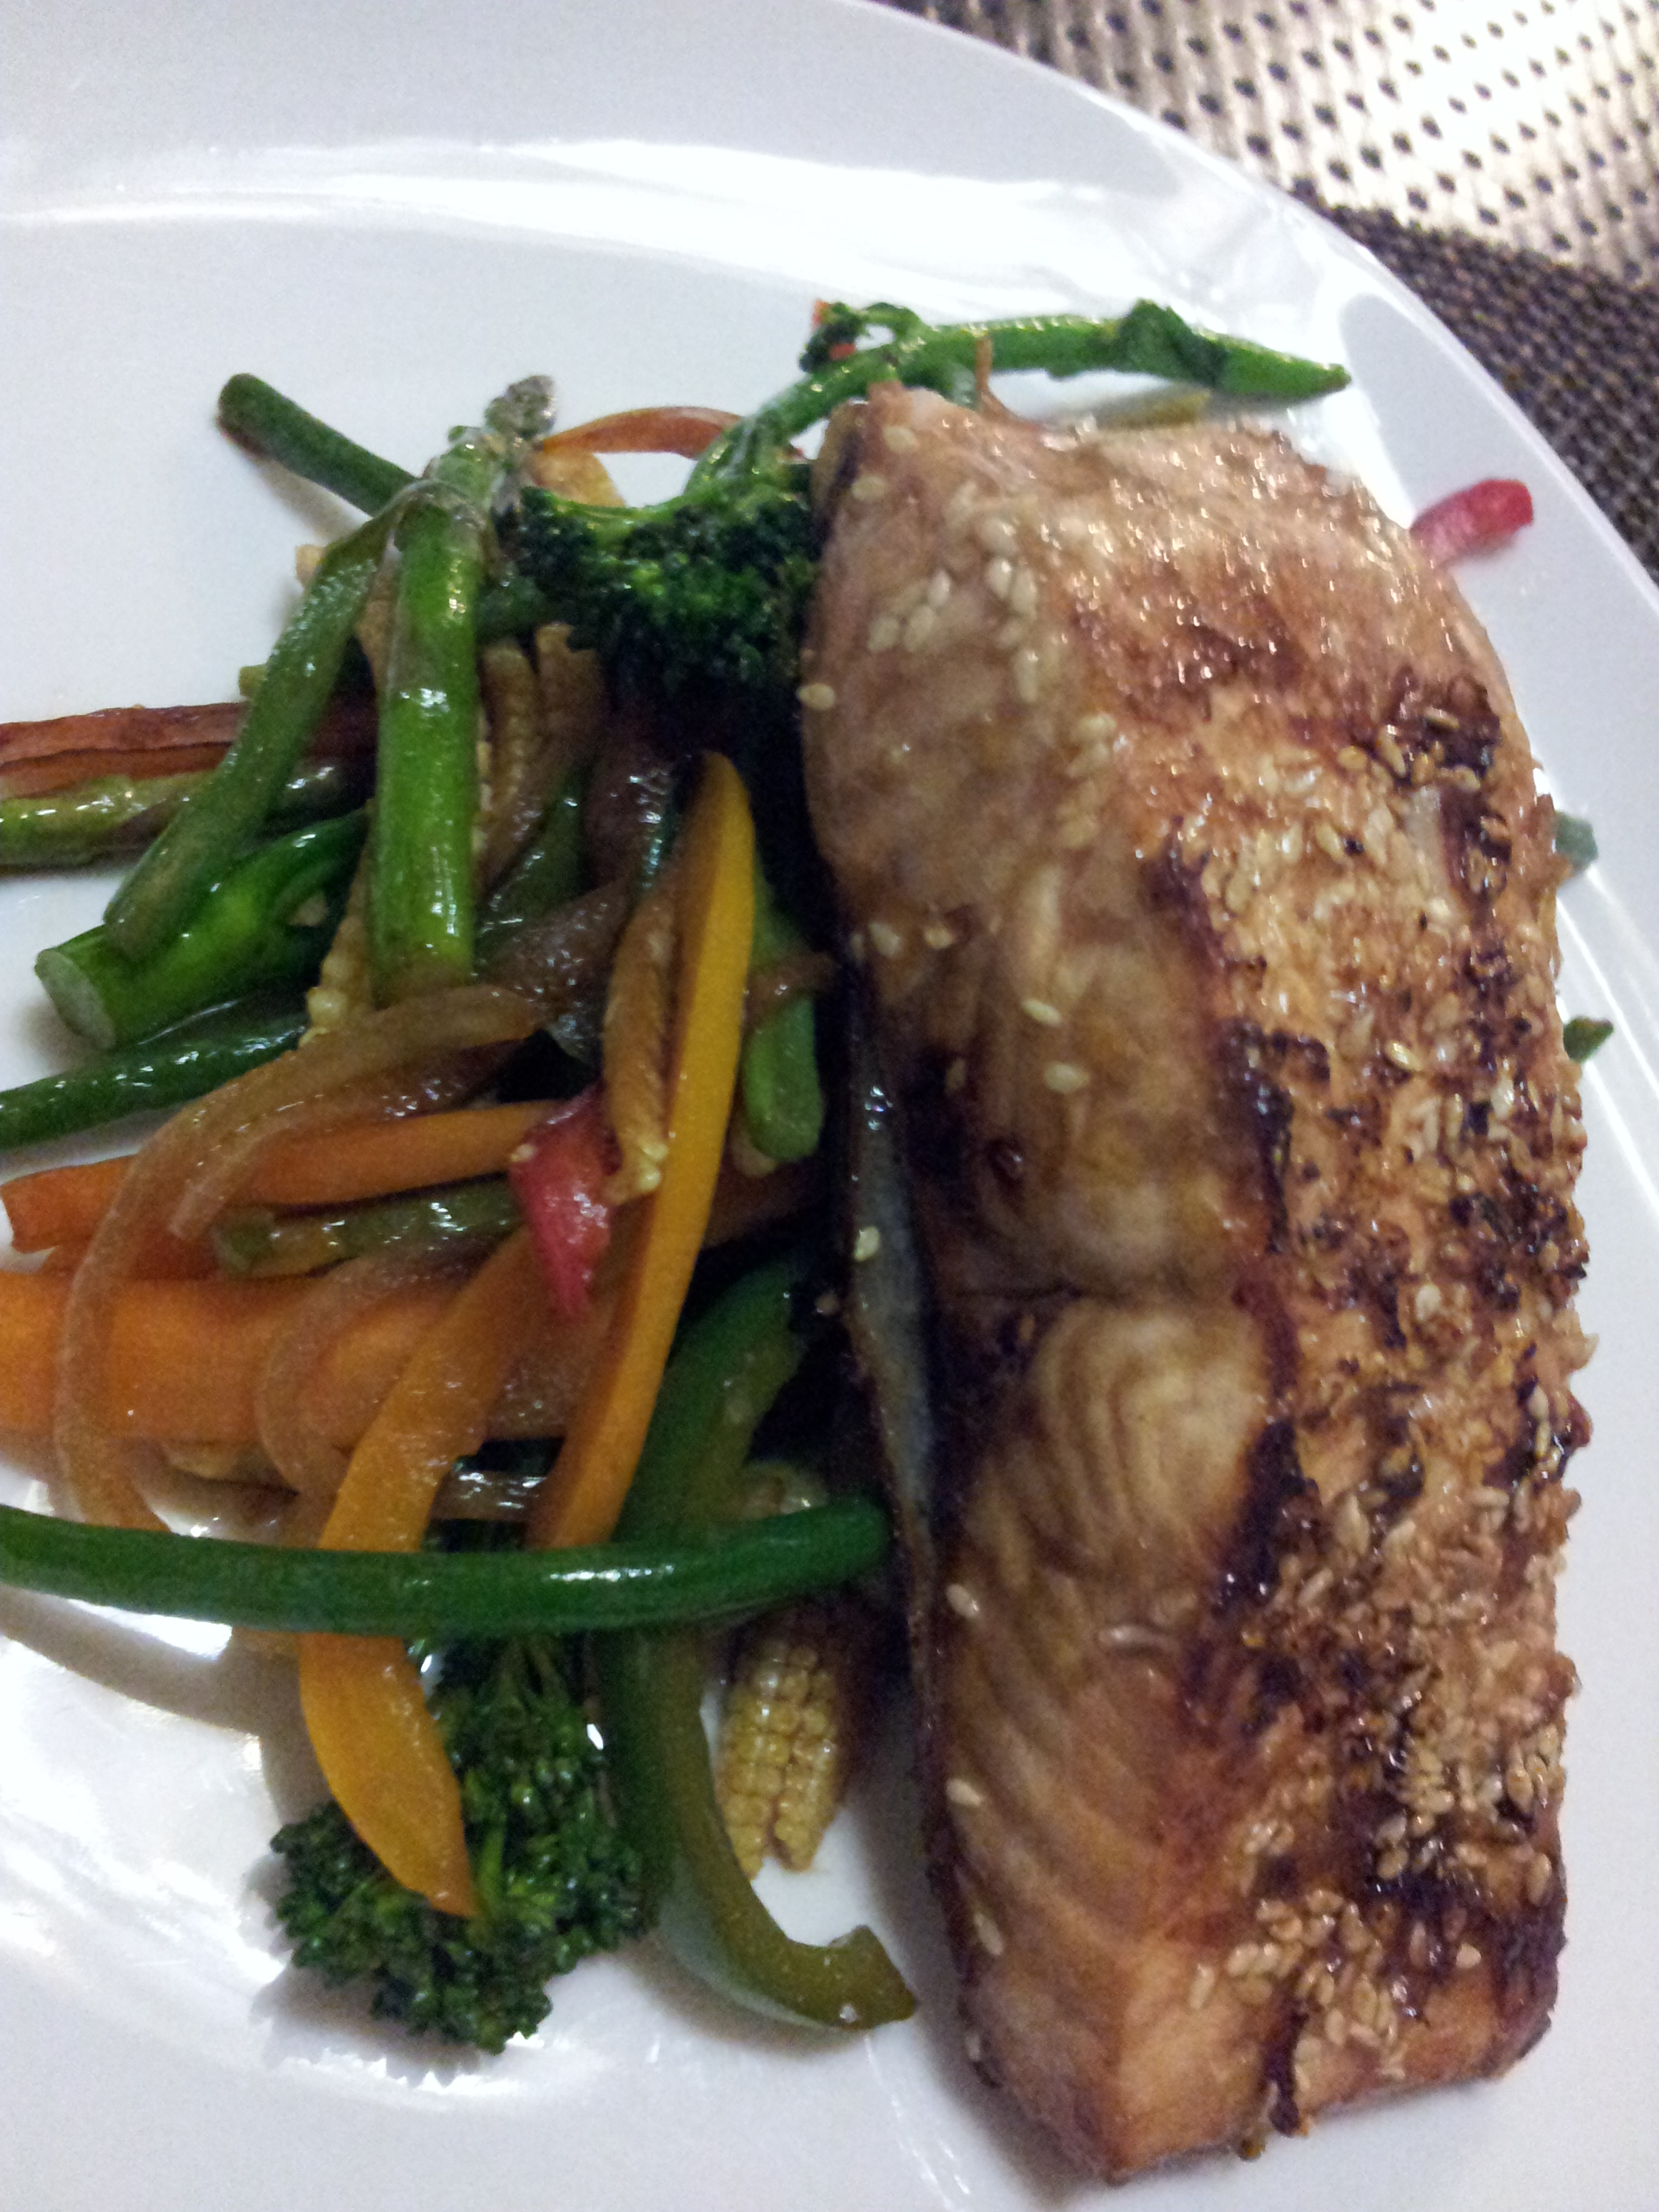 Soy & Honey Sesame crusted salmon with Stir fried Vegetables